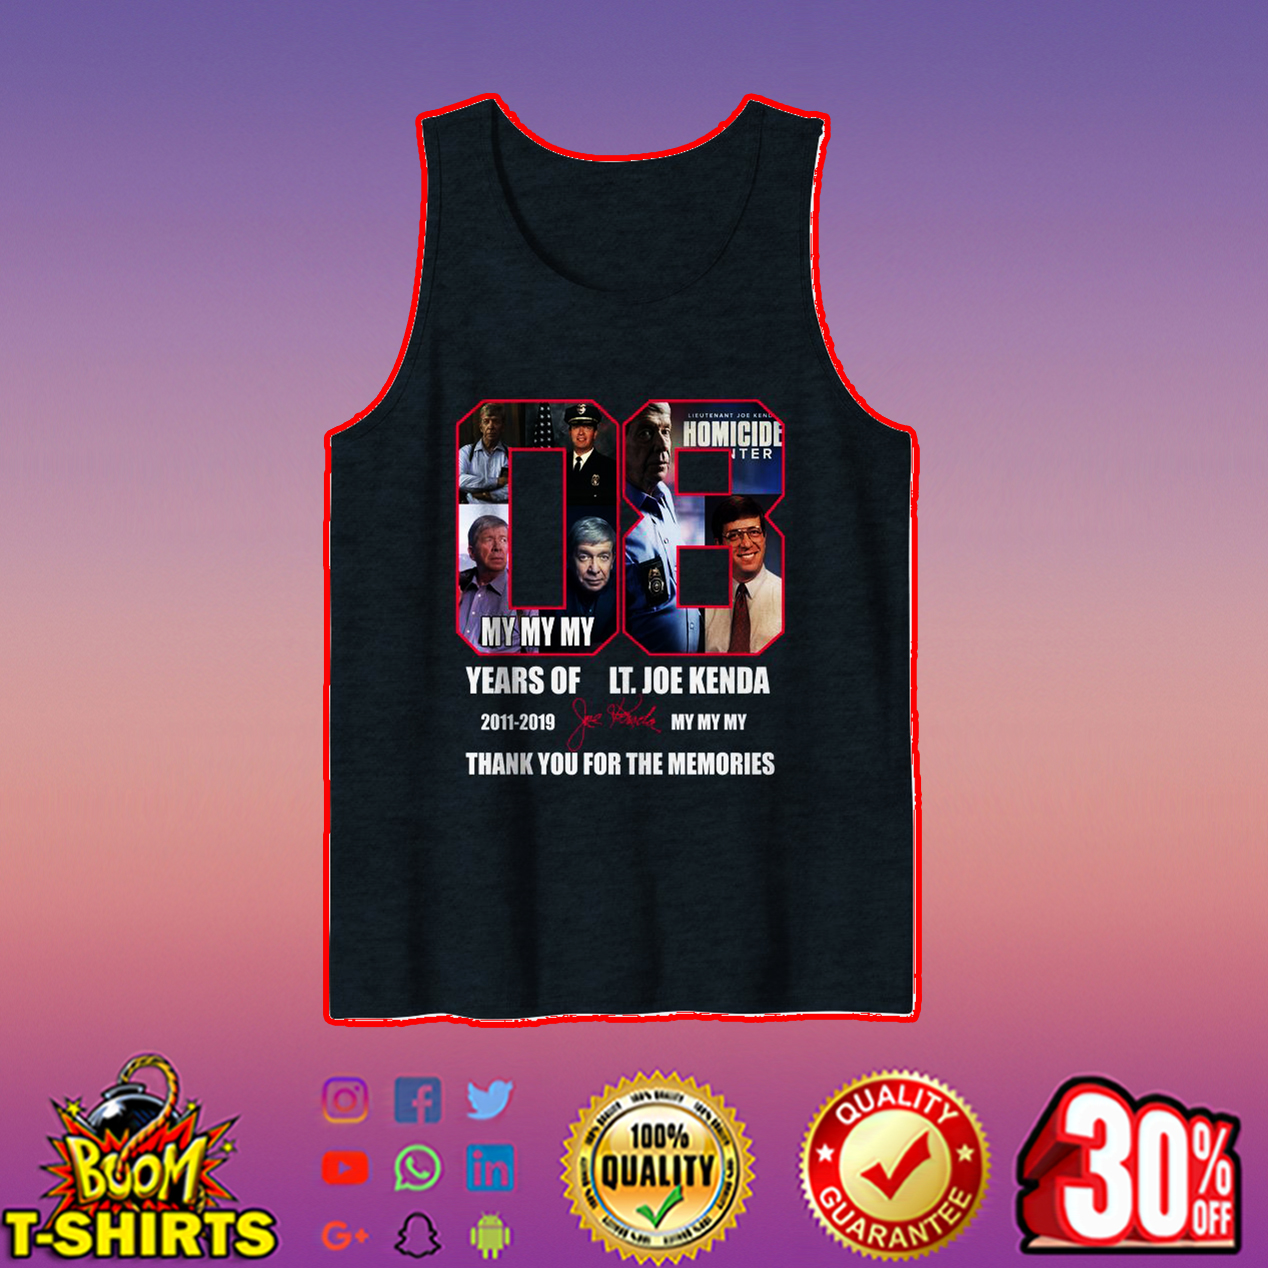 8 years of LT Joe Kenda thank you for the memories tank top